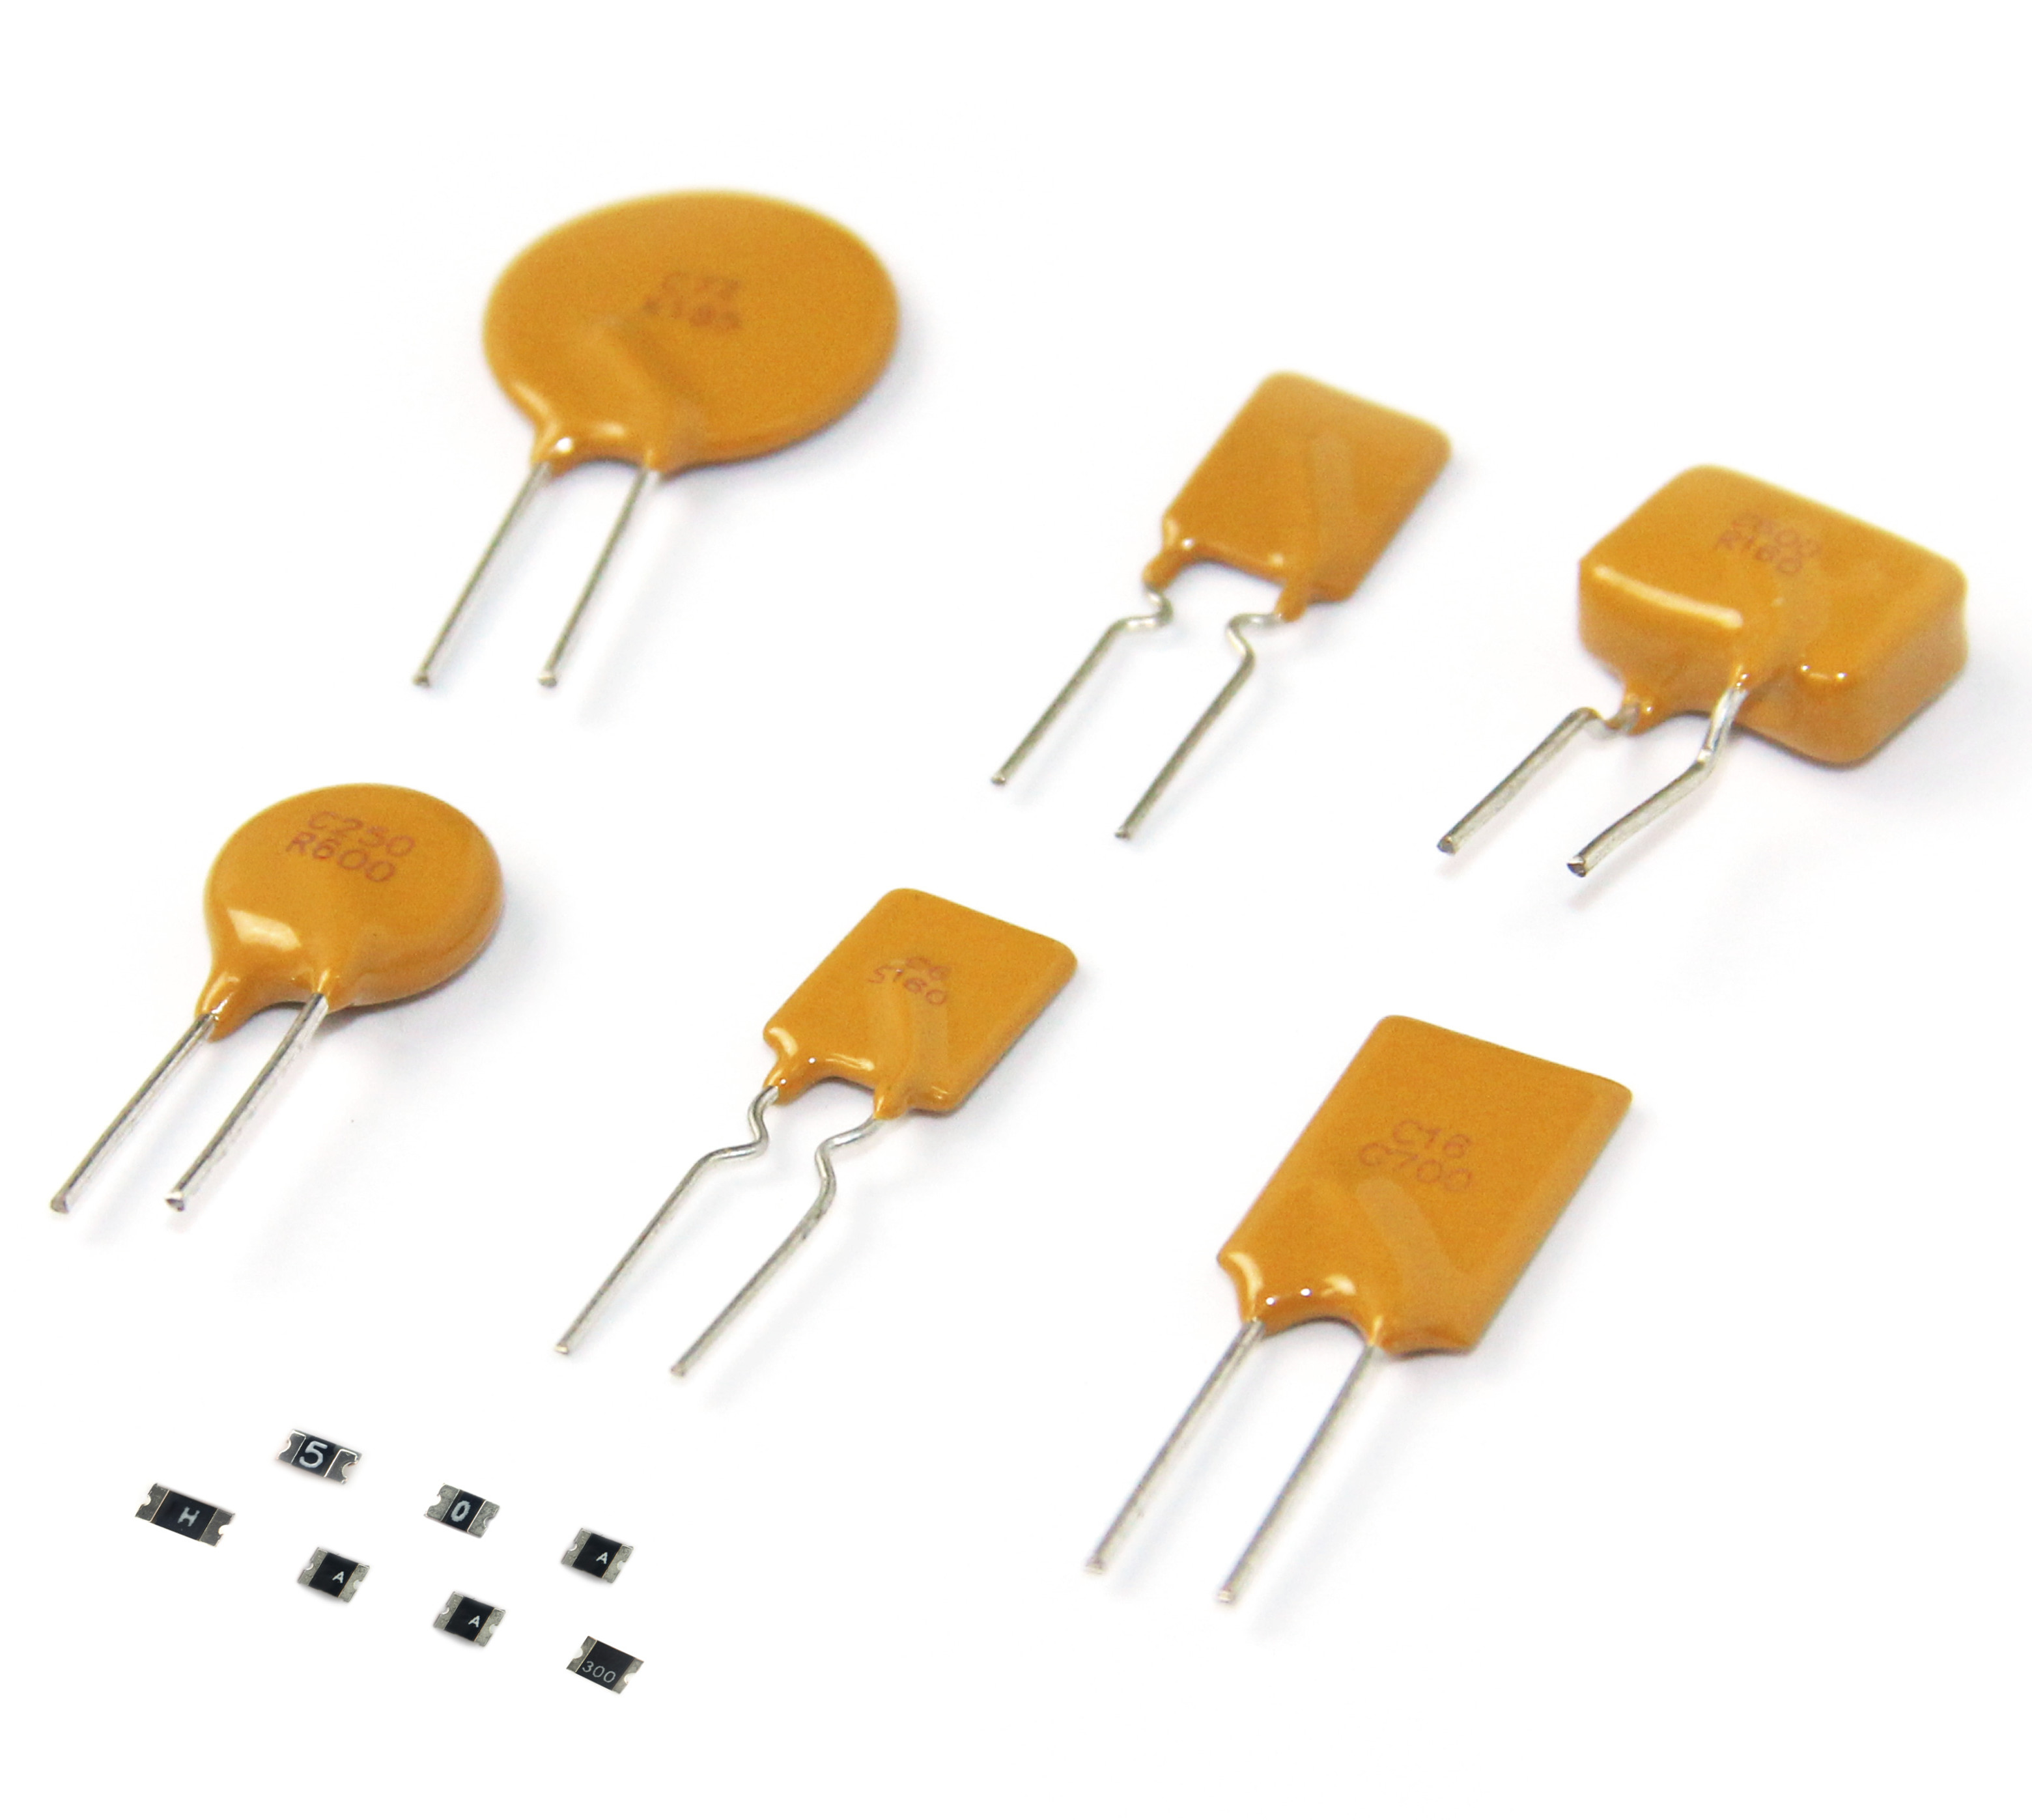 72V-005 IH 0.05A IT 0.1A 60V 5s 0.3W Rmin 7.5 Ohm 72V Series thermistor PPTC resettable PolySwitch PTCs fuse  THT